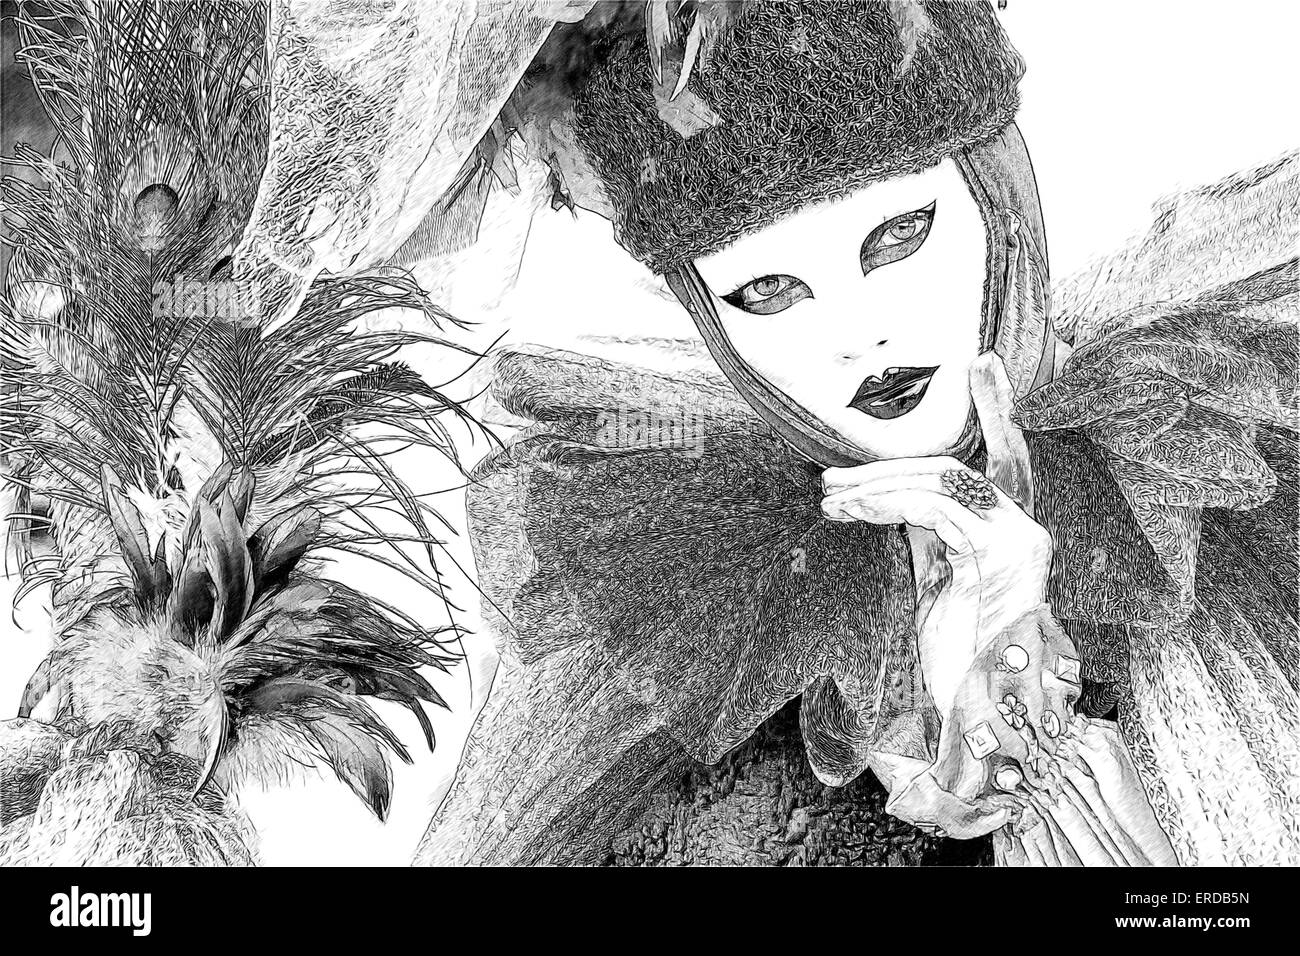 Black & white line drawing photo illustration of woman in frilly costume with feathered wand celebrating Carnival - Stock Image